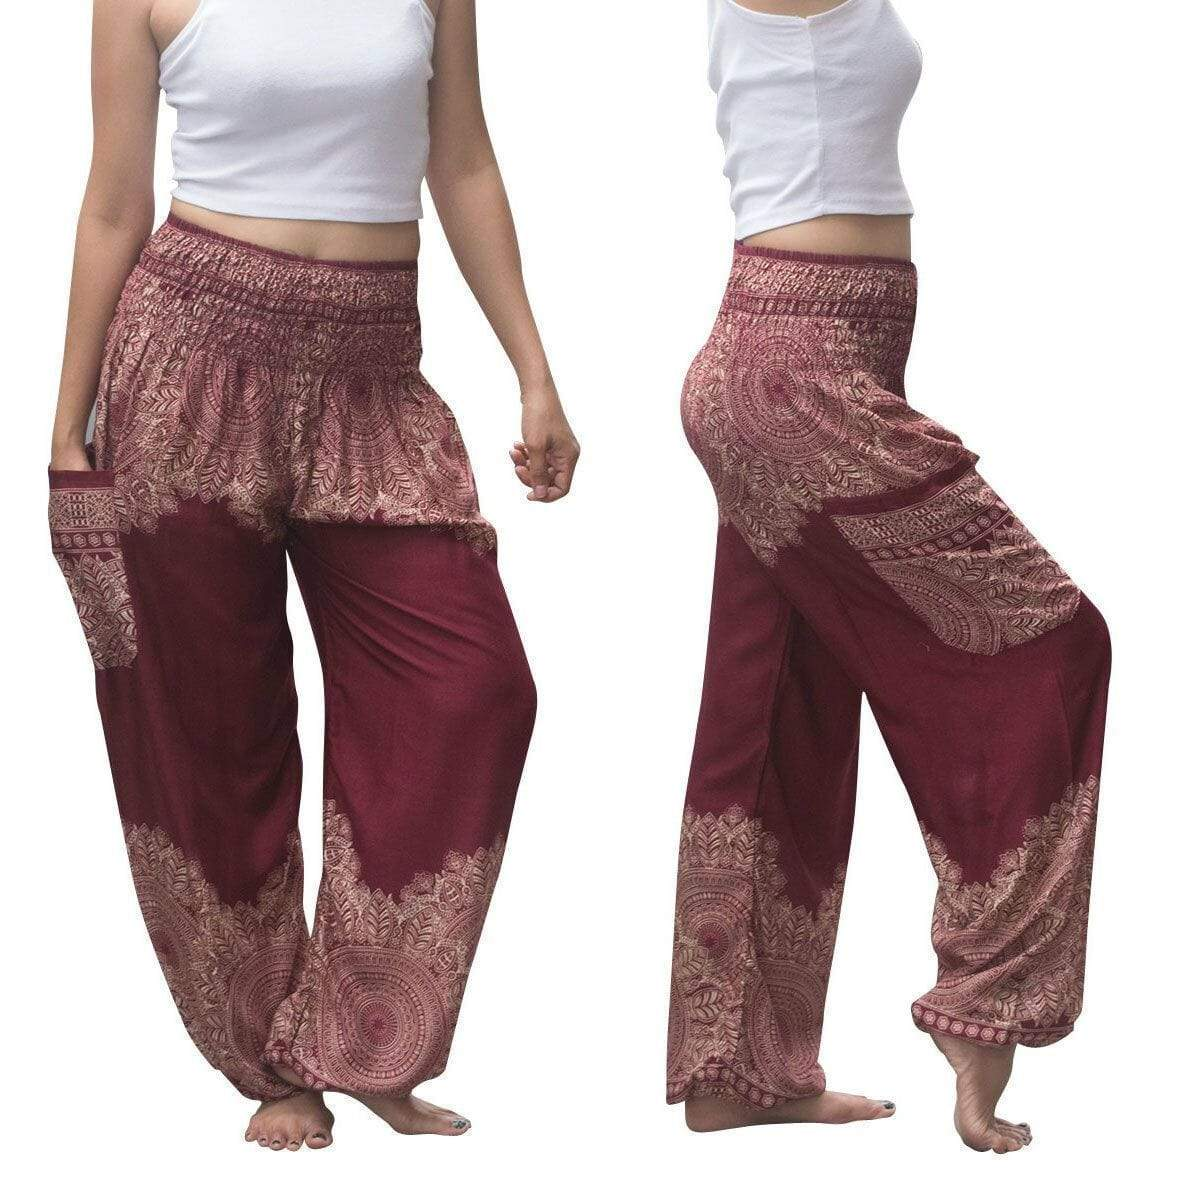 yoyoyoyoga.com Harem Pants Burgundy / One Size Boho Thai Mandala Feathers Harem Yoga Pants